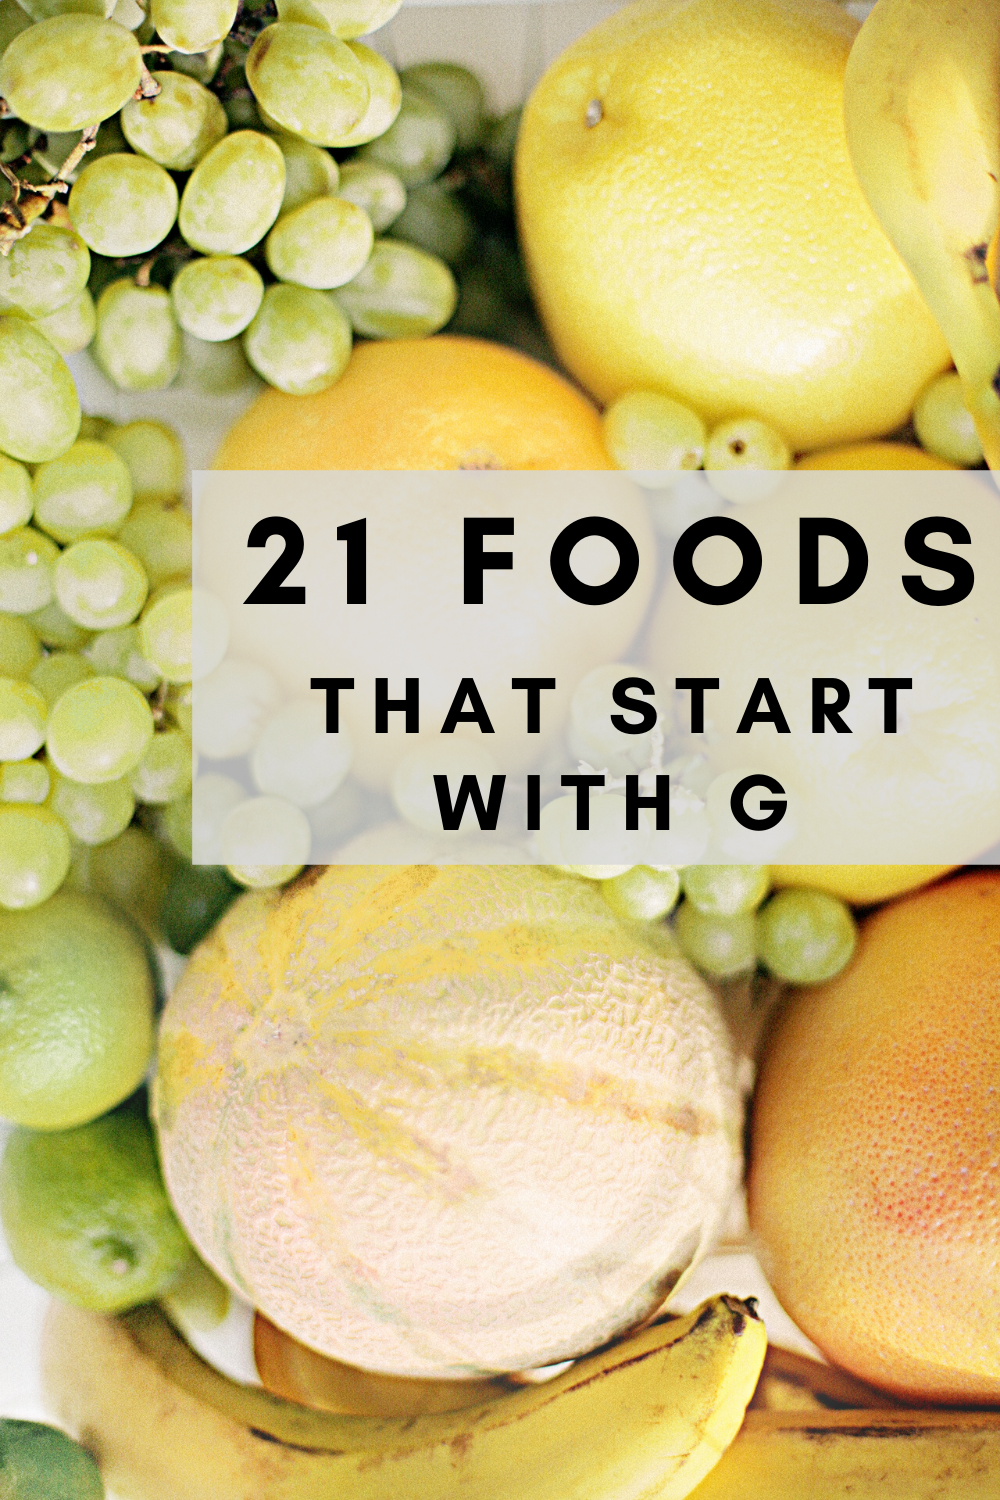 21 Foods That Start With G » in 2020